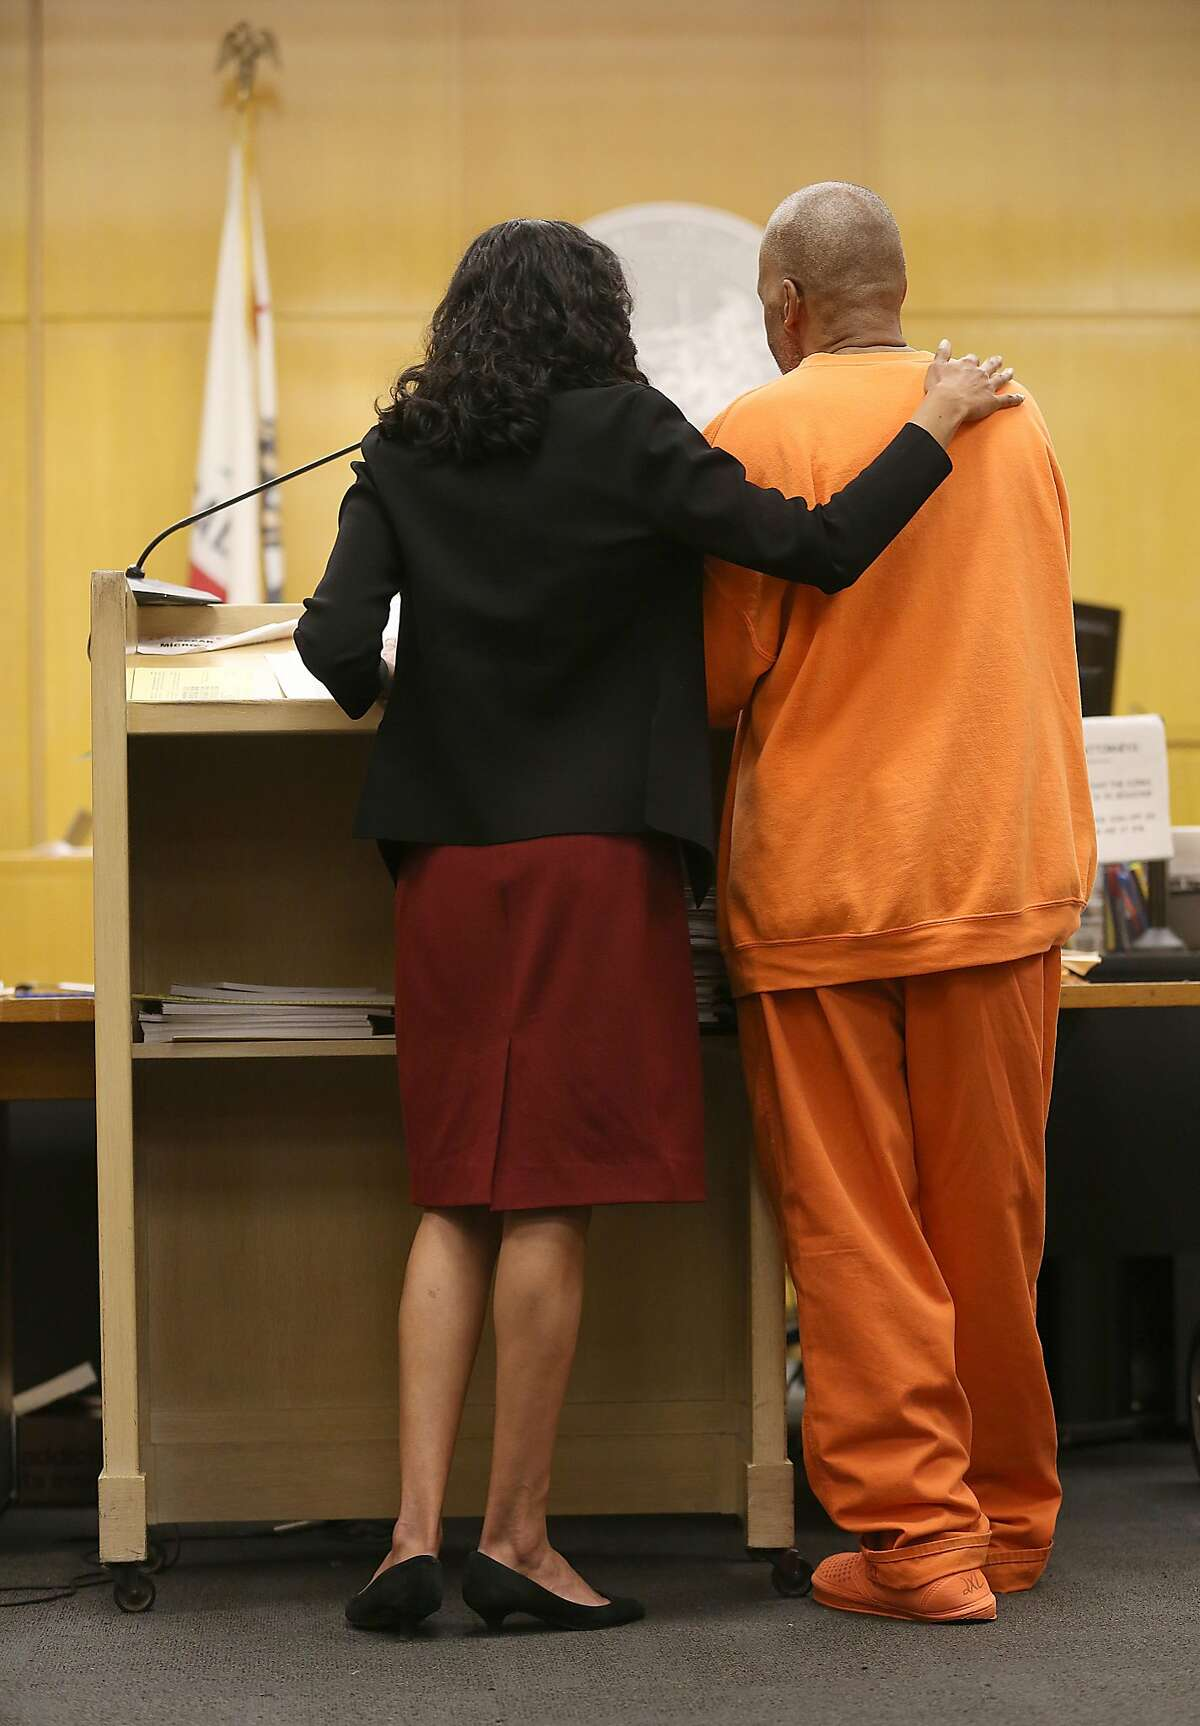 Deputy public defender Anita Nabha with robbery suspect Kenneth Humphrey as they appear in court to hear sentencing at the Hall of Justice on Thursday, May 3, 2018, in San Francisco, Calif. This case may determine the standard by which inmates can be held before trial.